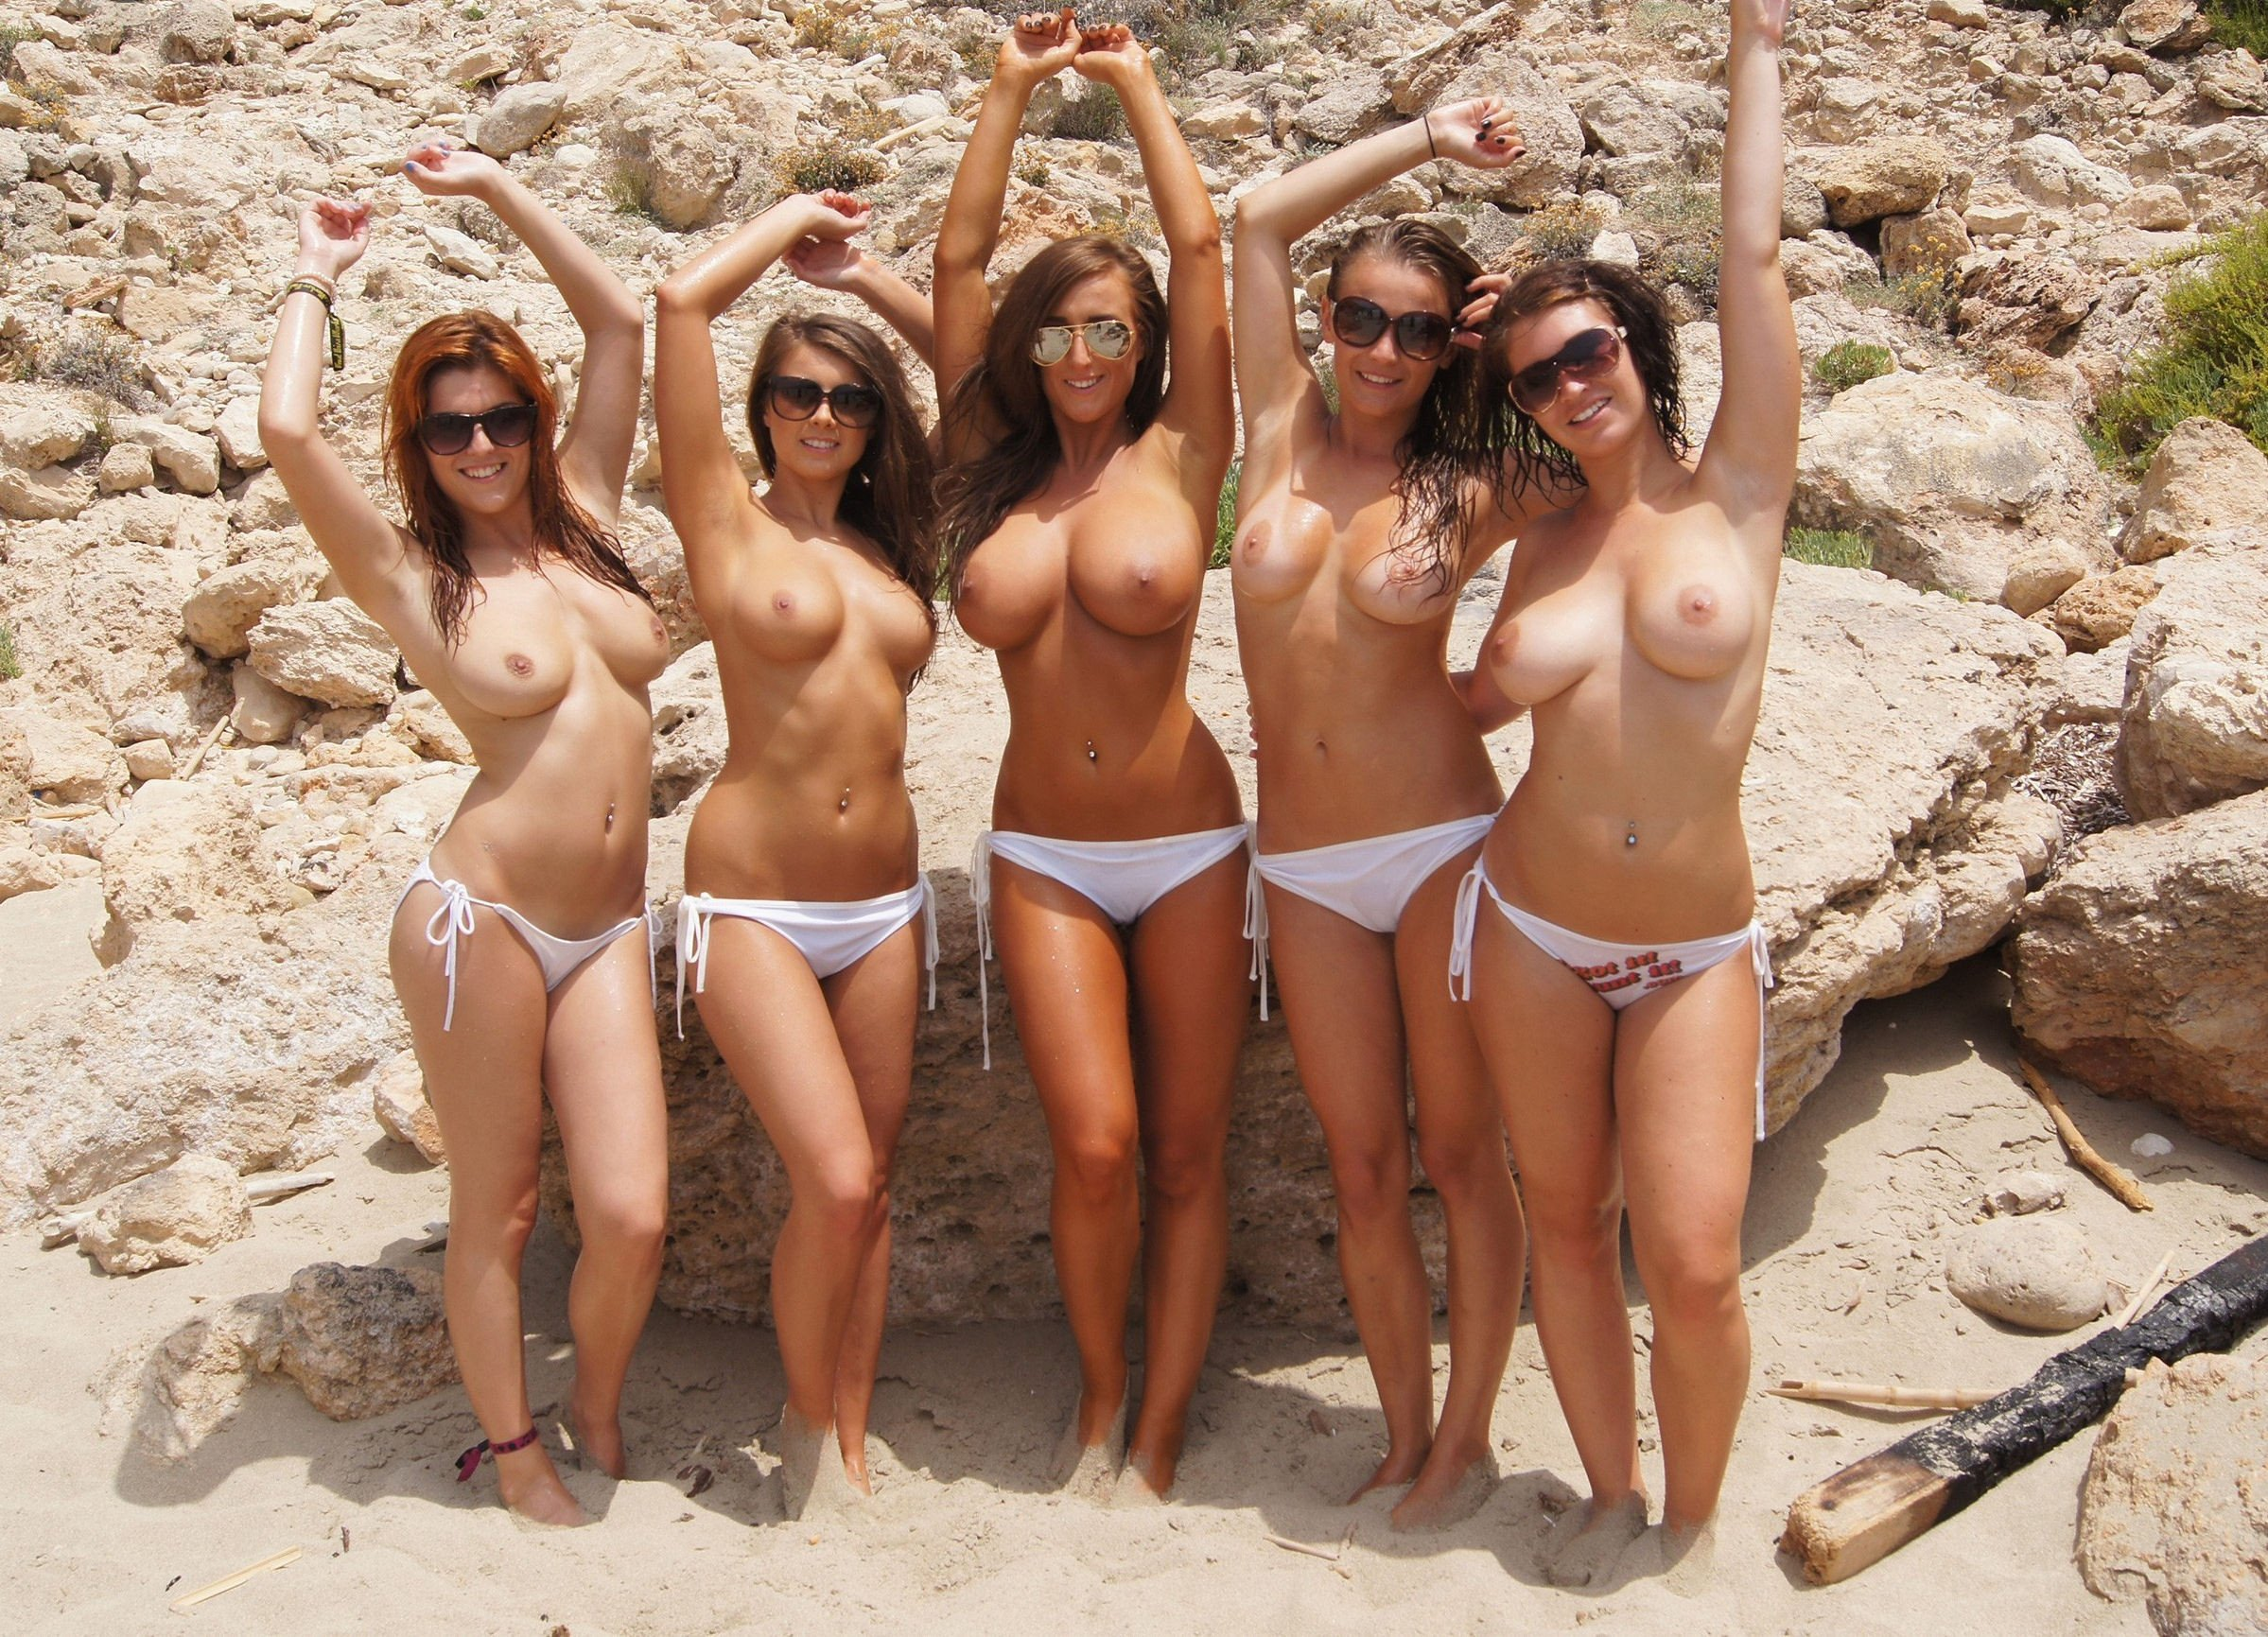 Beaches on topless women